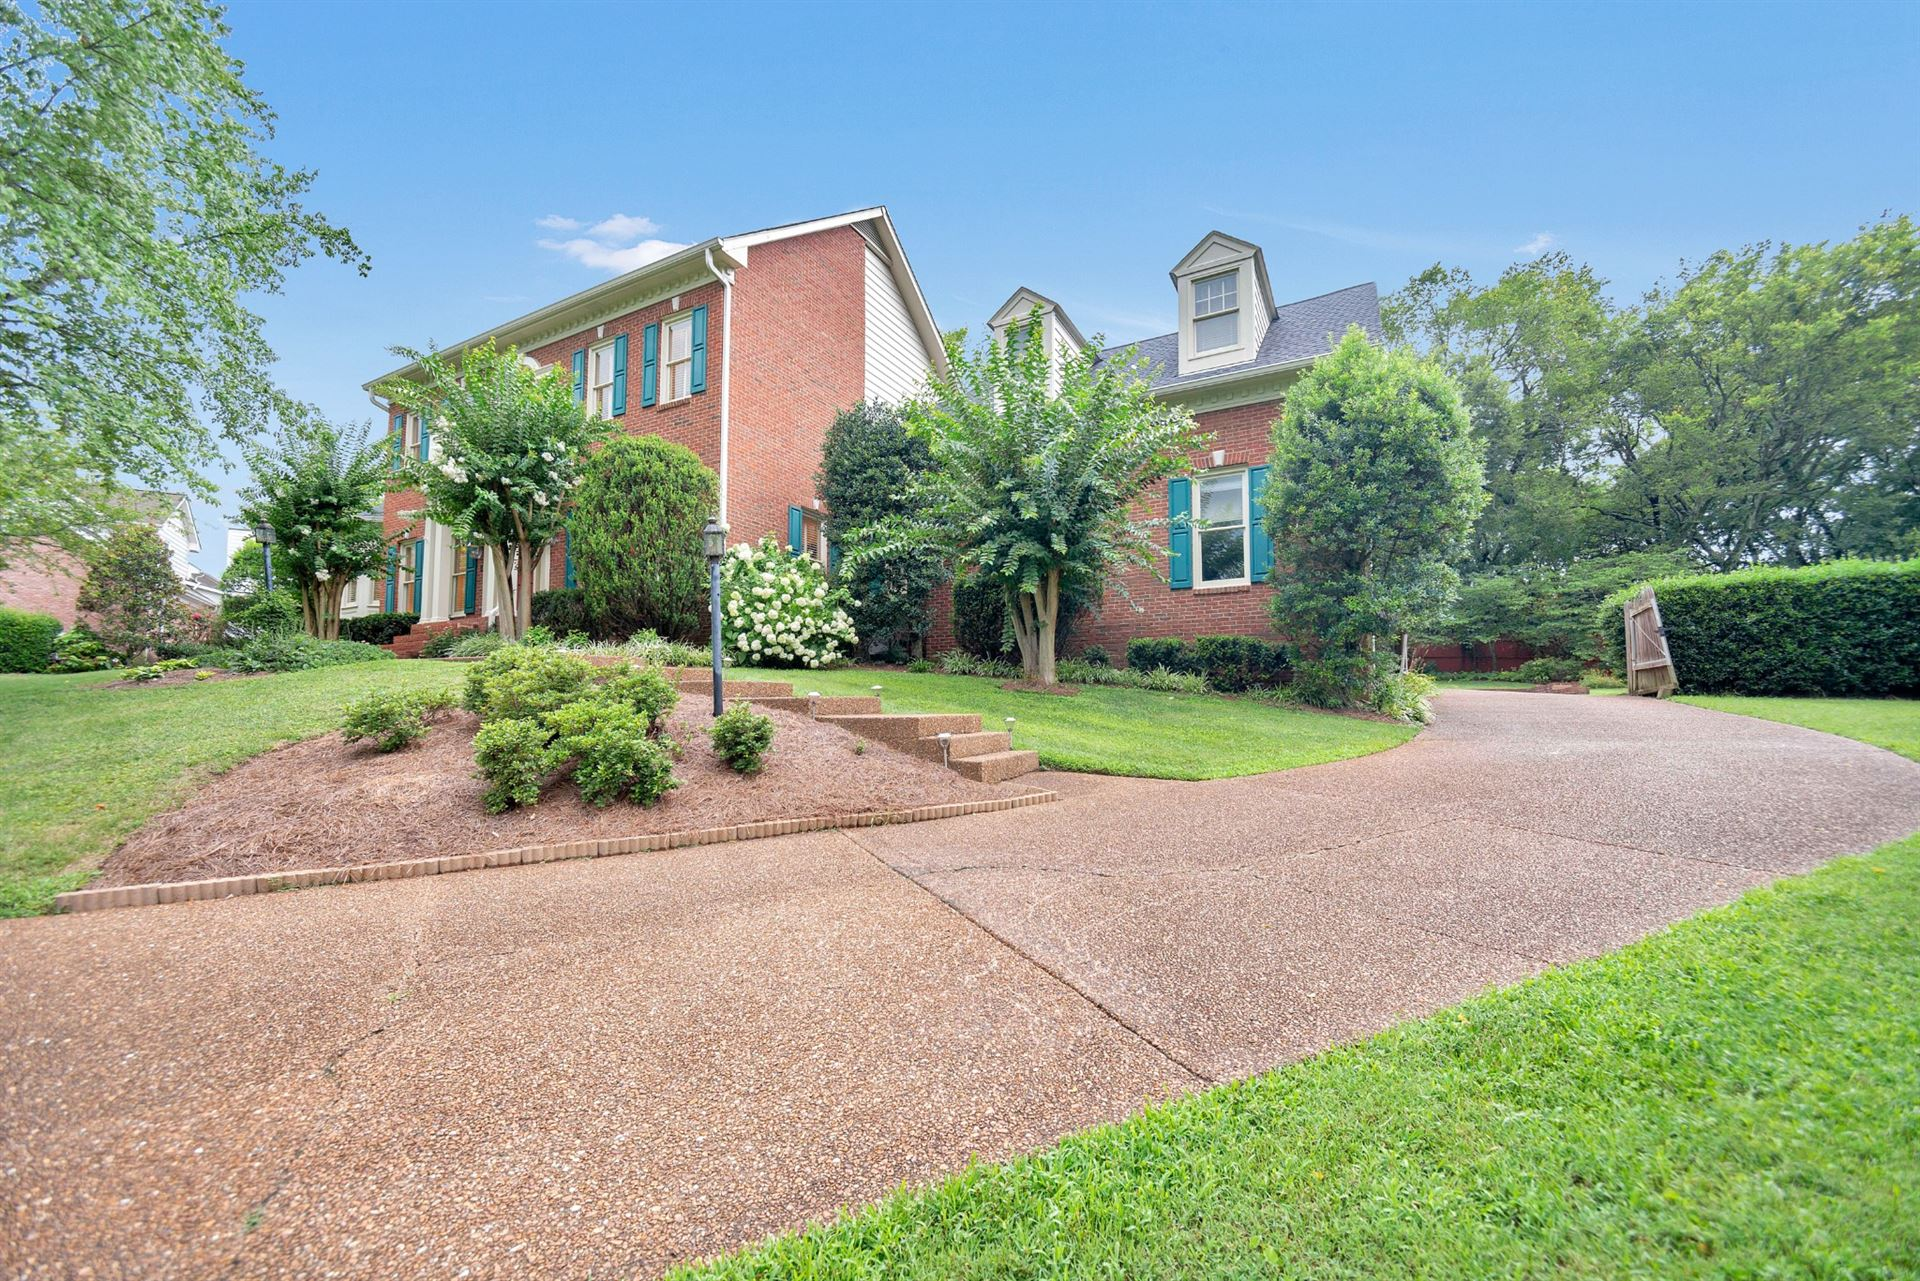 Photo of 2169 Key Dr, Brentwood, TN 37027 (MLS # 2164456)